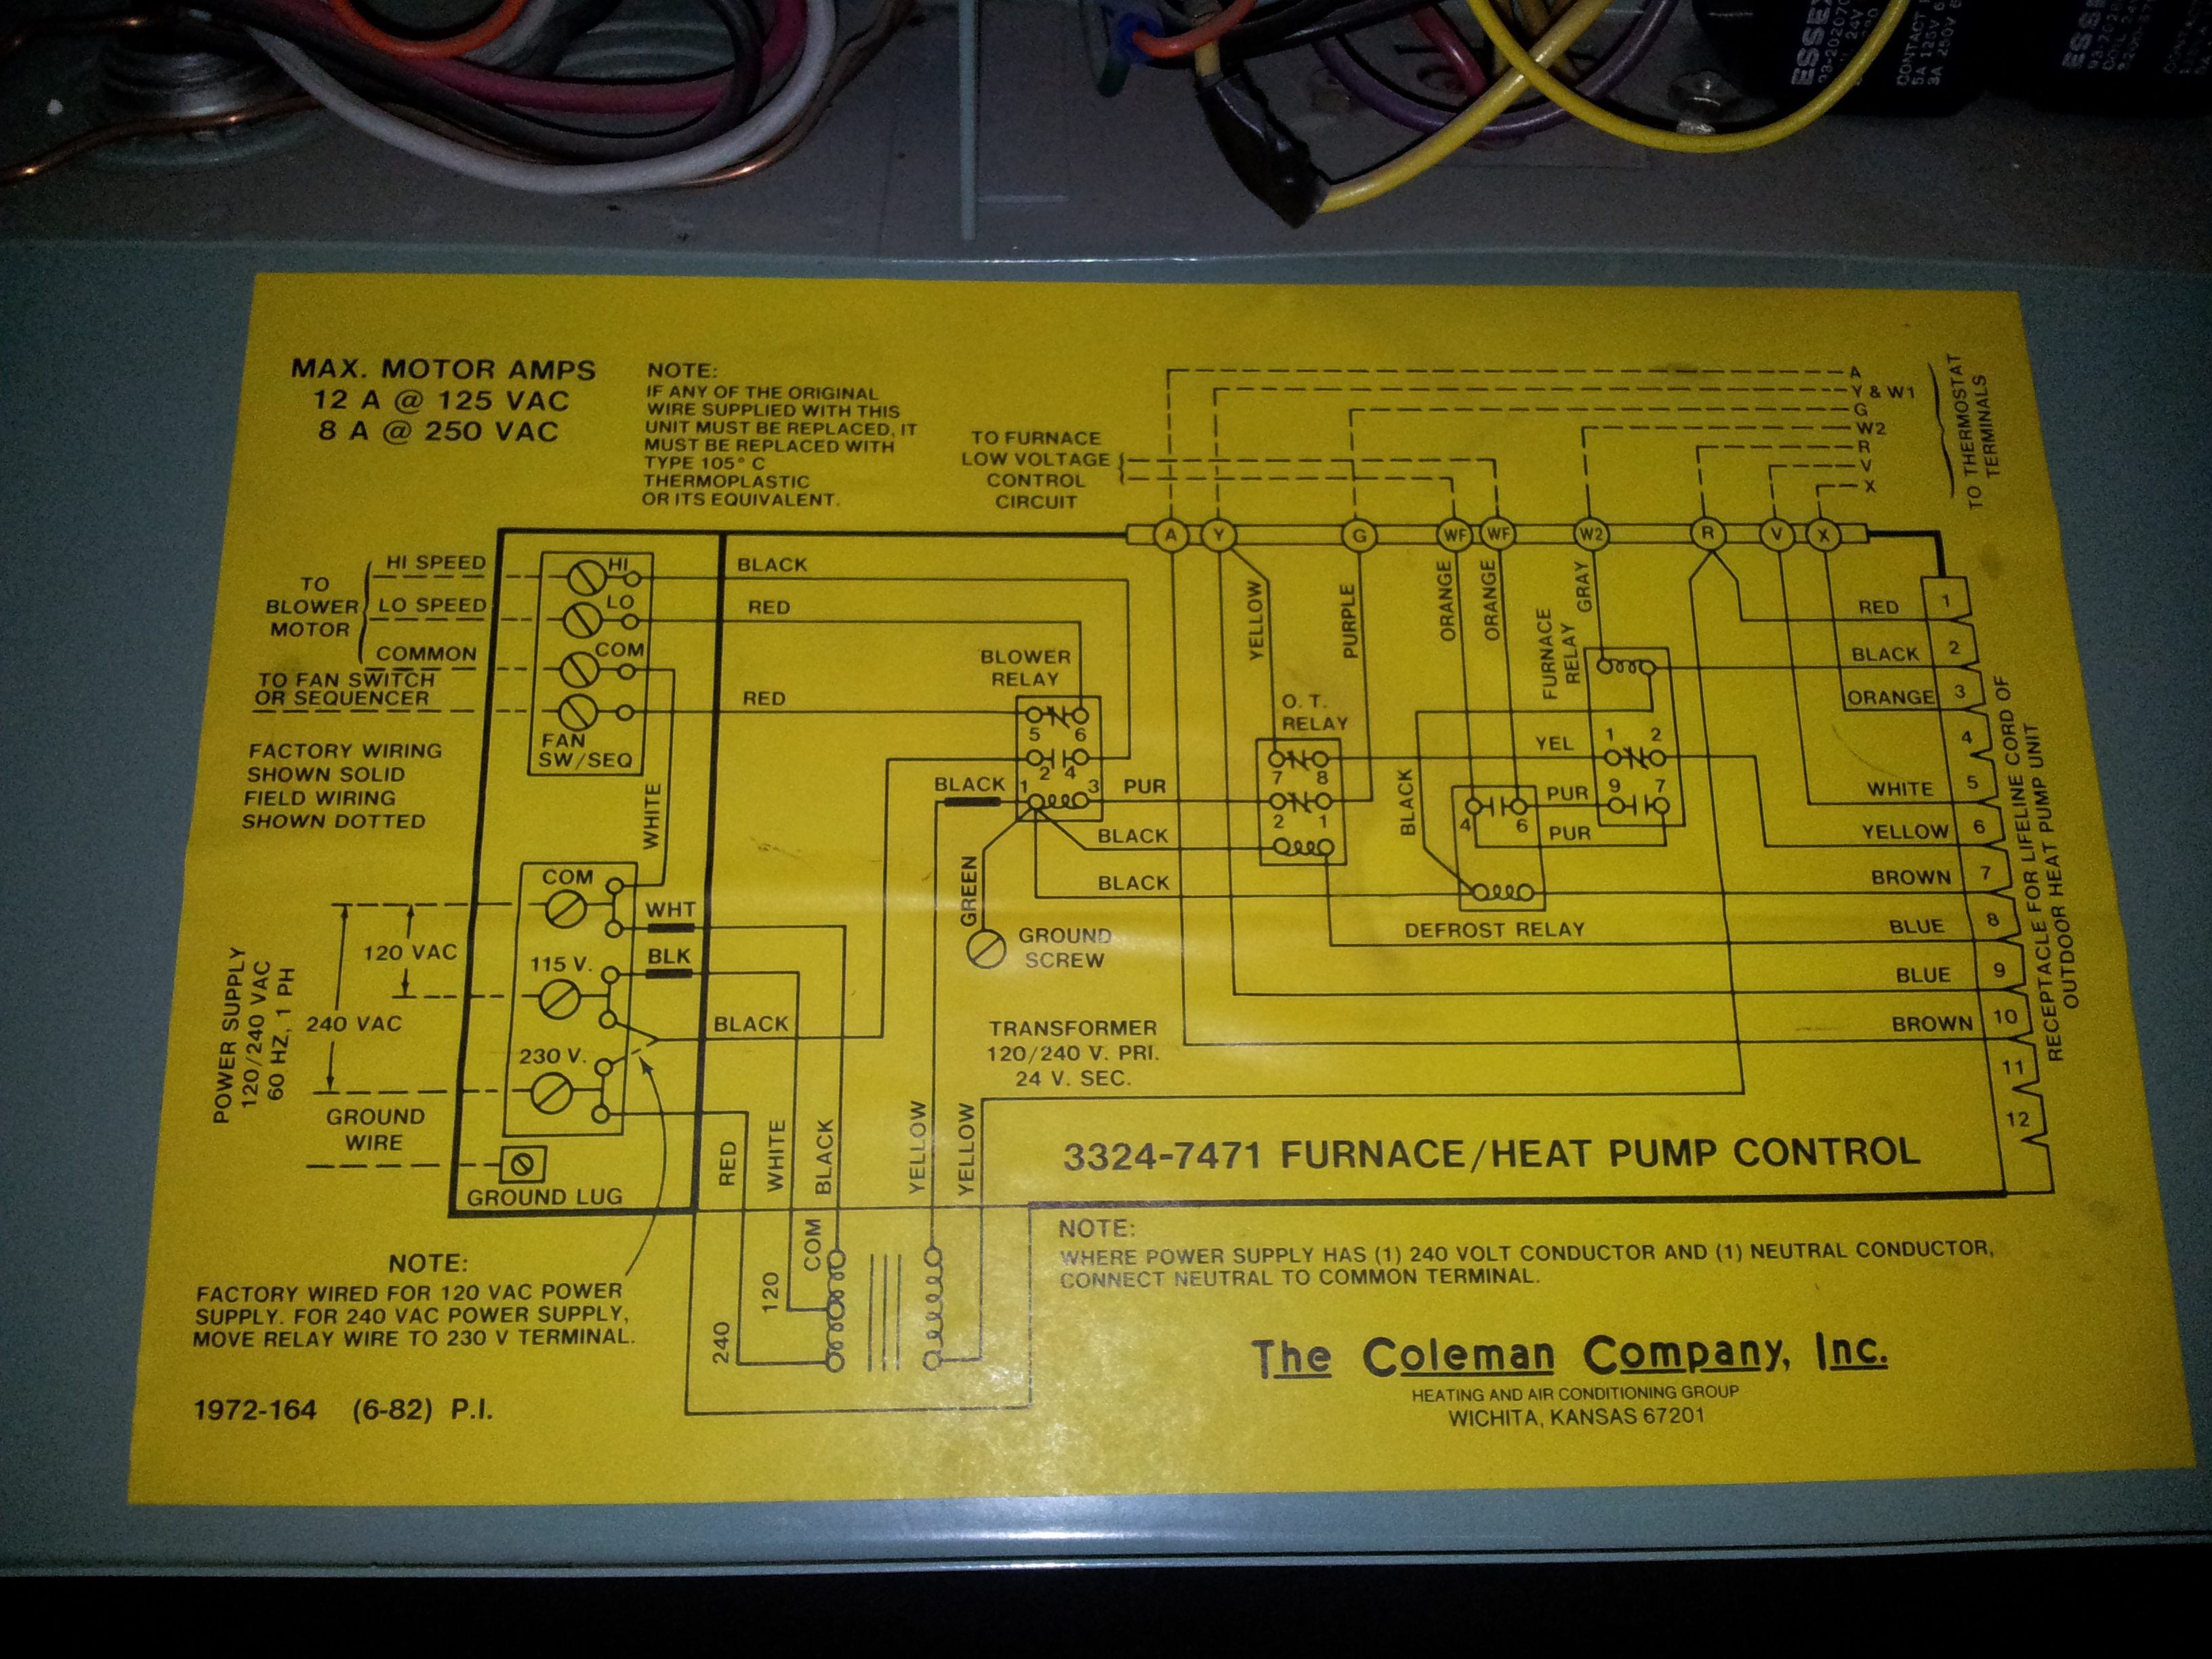 2012 08 07_020543_20120806_170817 wiring diagram for coleman furnace readingrat net carrier gas furnace wiring diagrams at bakdesigns.co